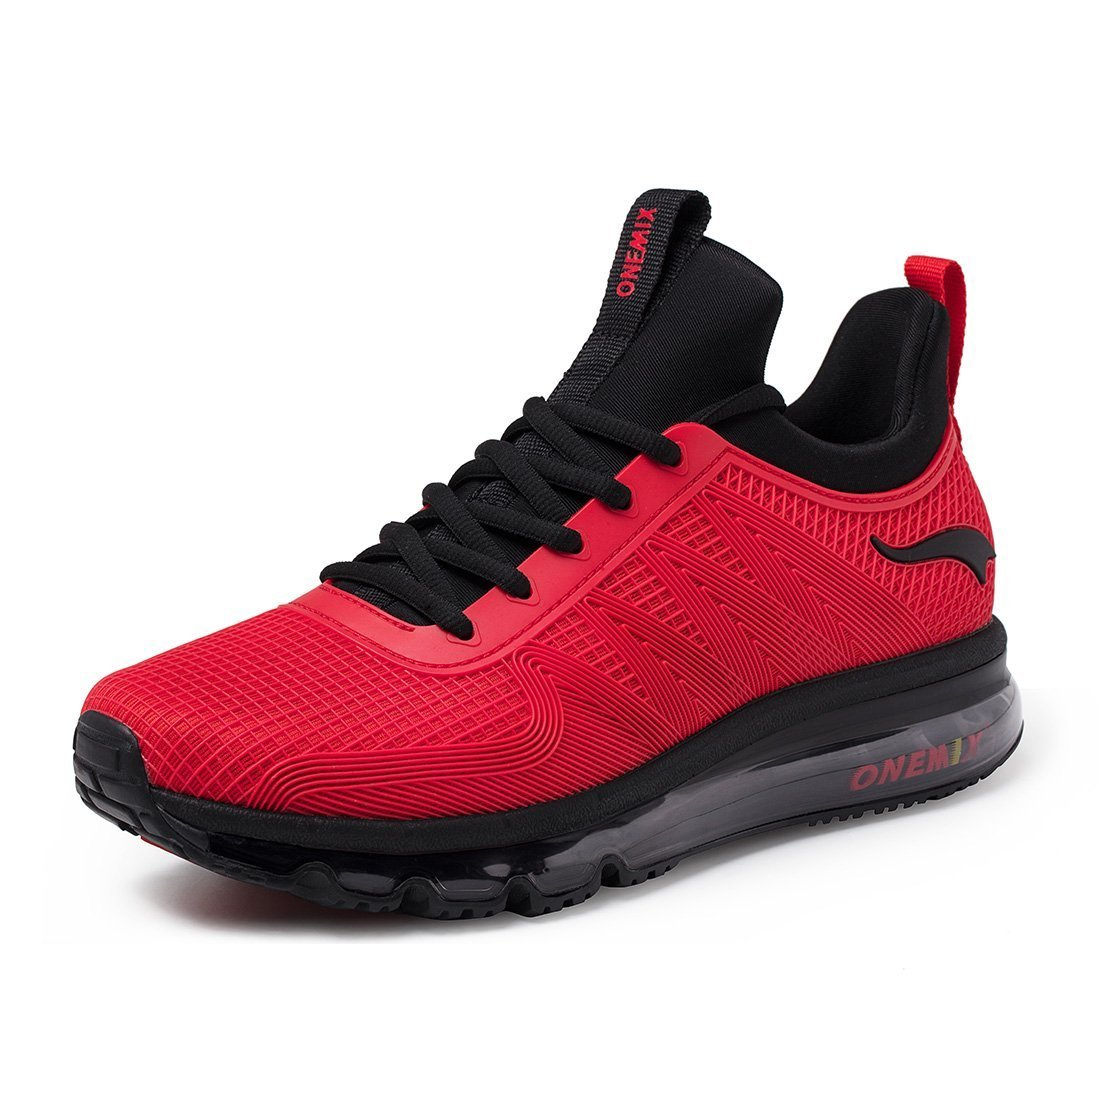 ONEMIX Men's Air Cushion Sports Running Shoes Lace-up Casual Sneaker Red 11 US HH45